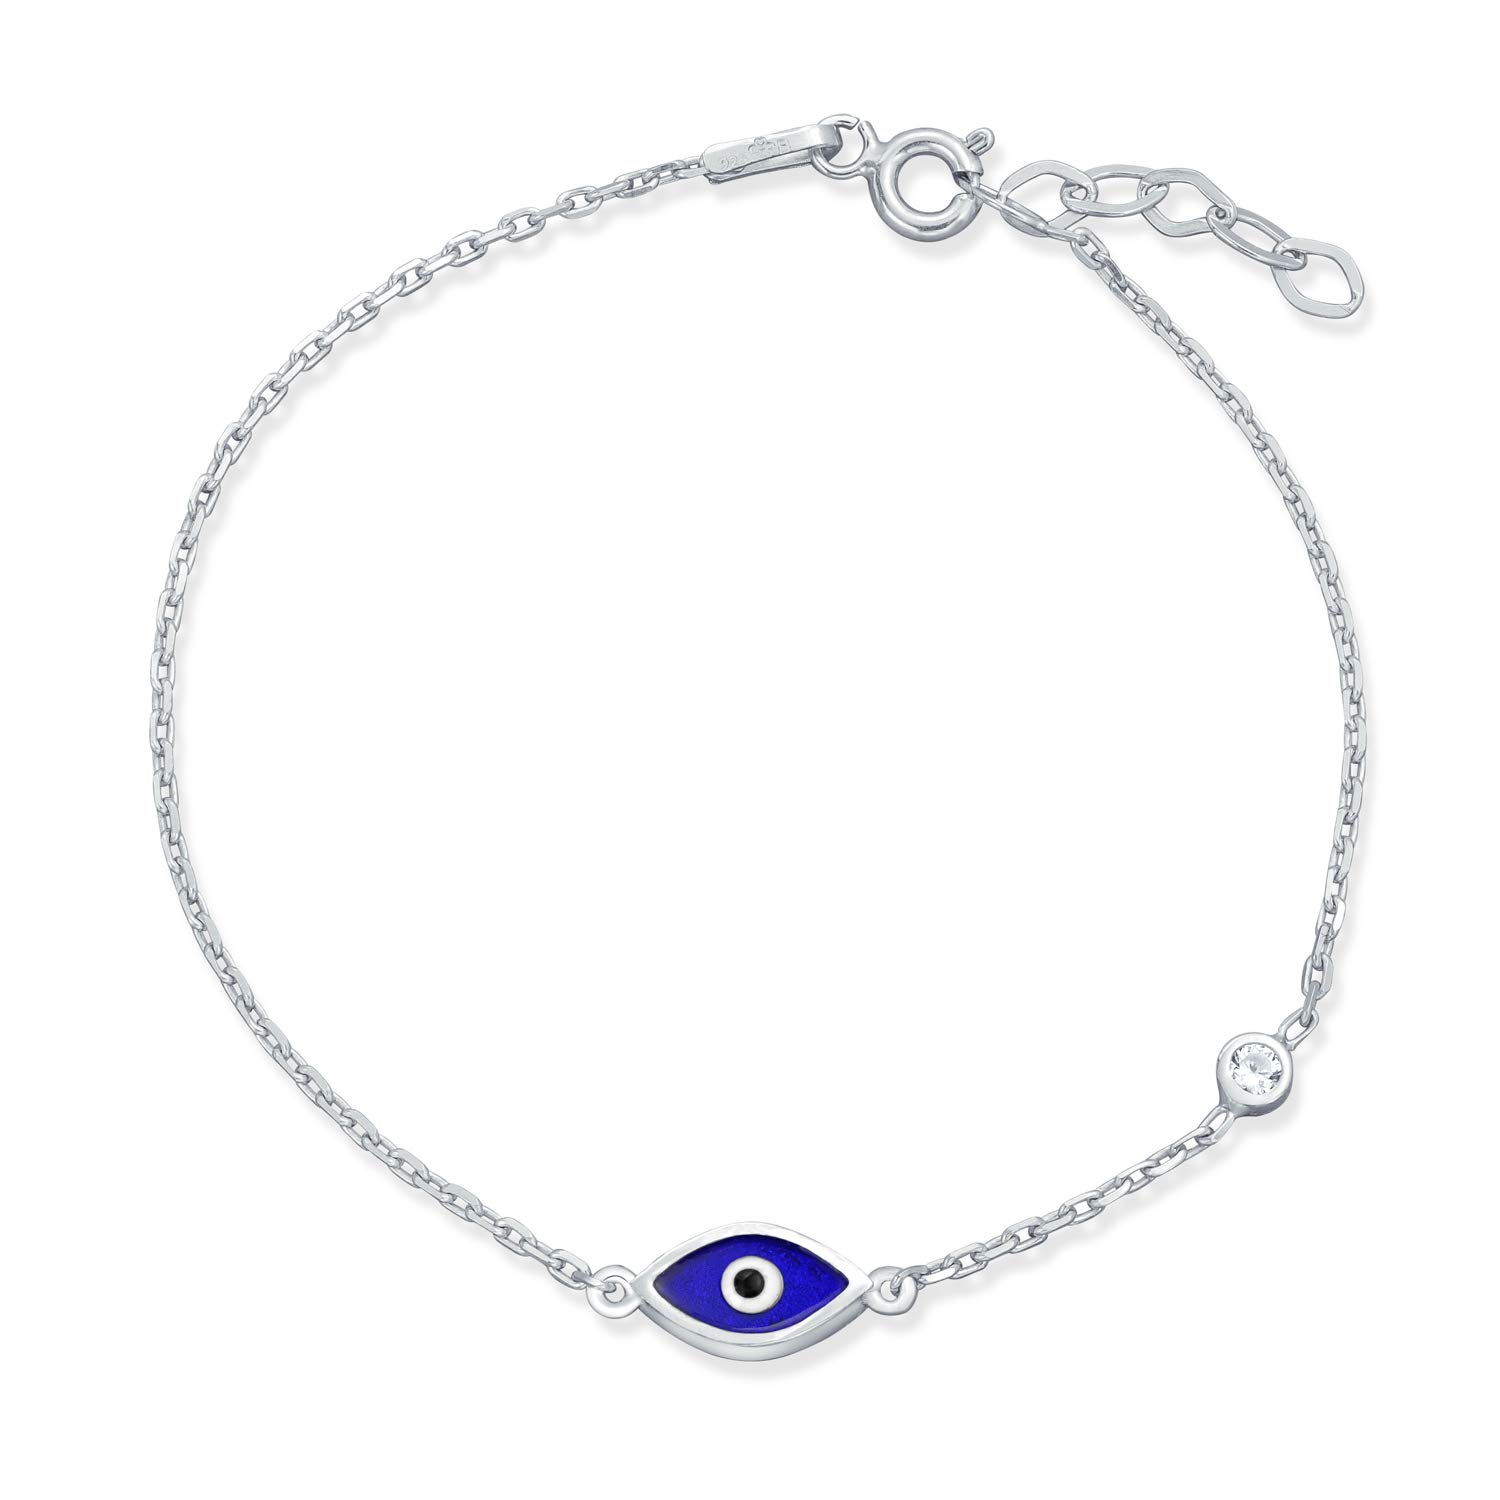 Bling Jewelry Navy Blue Evil Eye Sterling Silver CZ Bracelet 7 Inch IY-OC5519